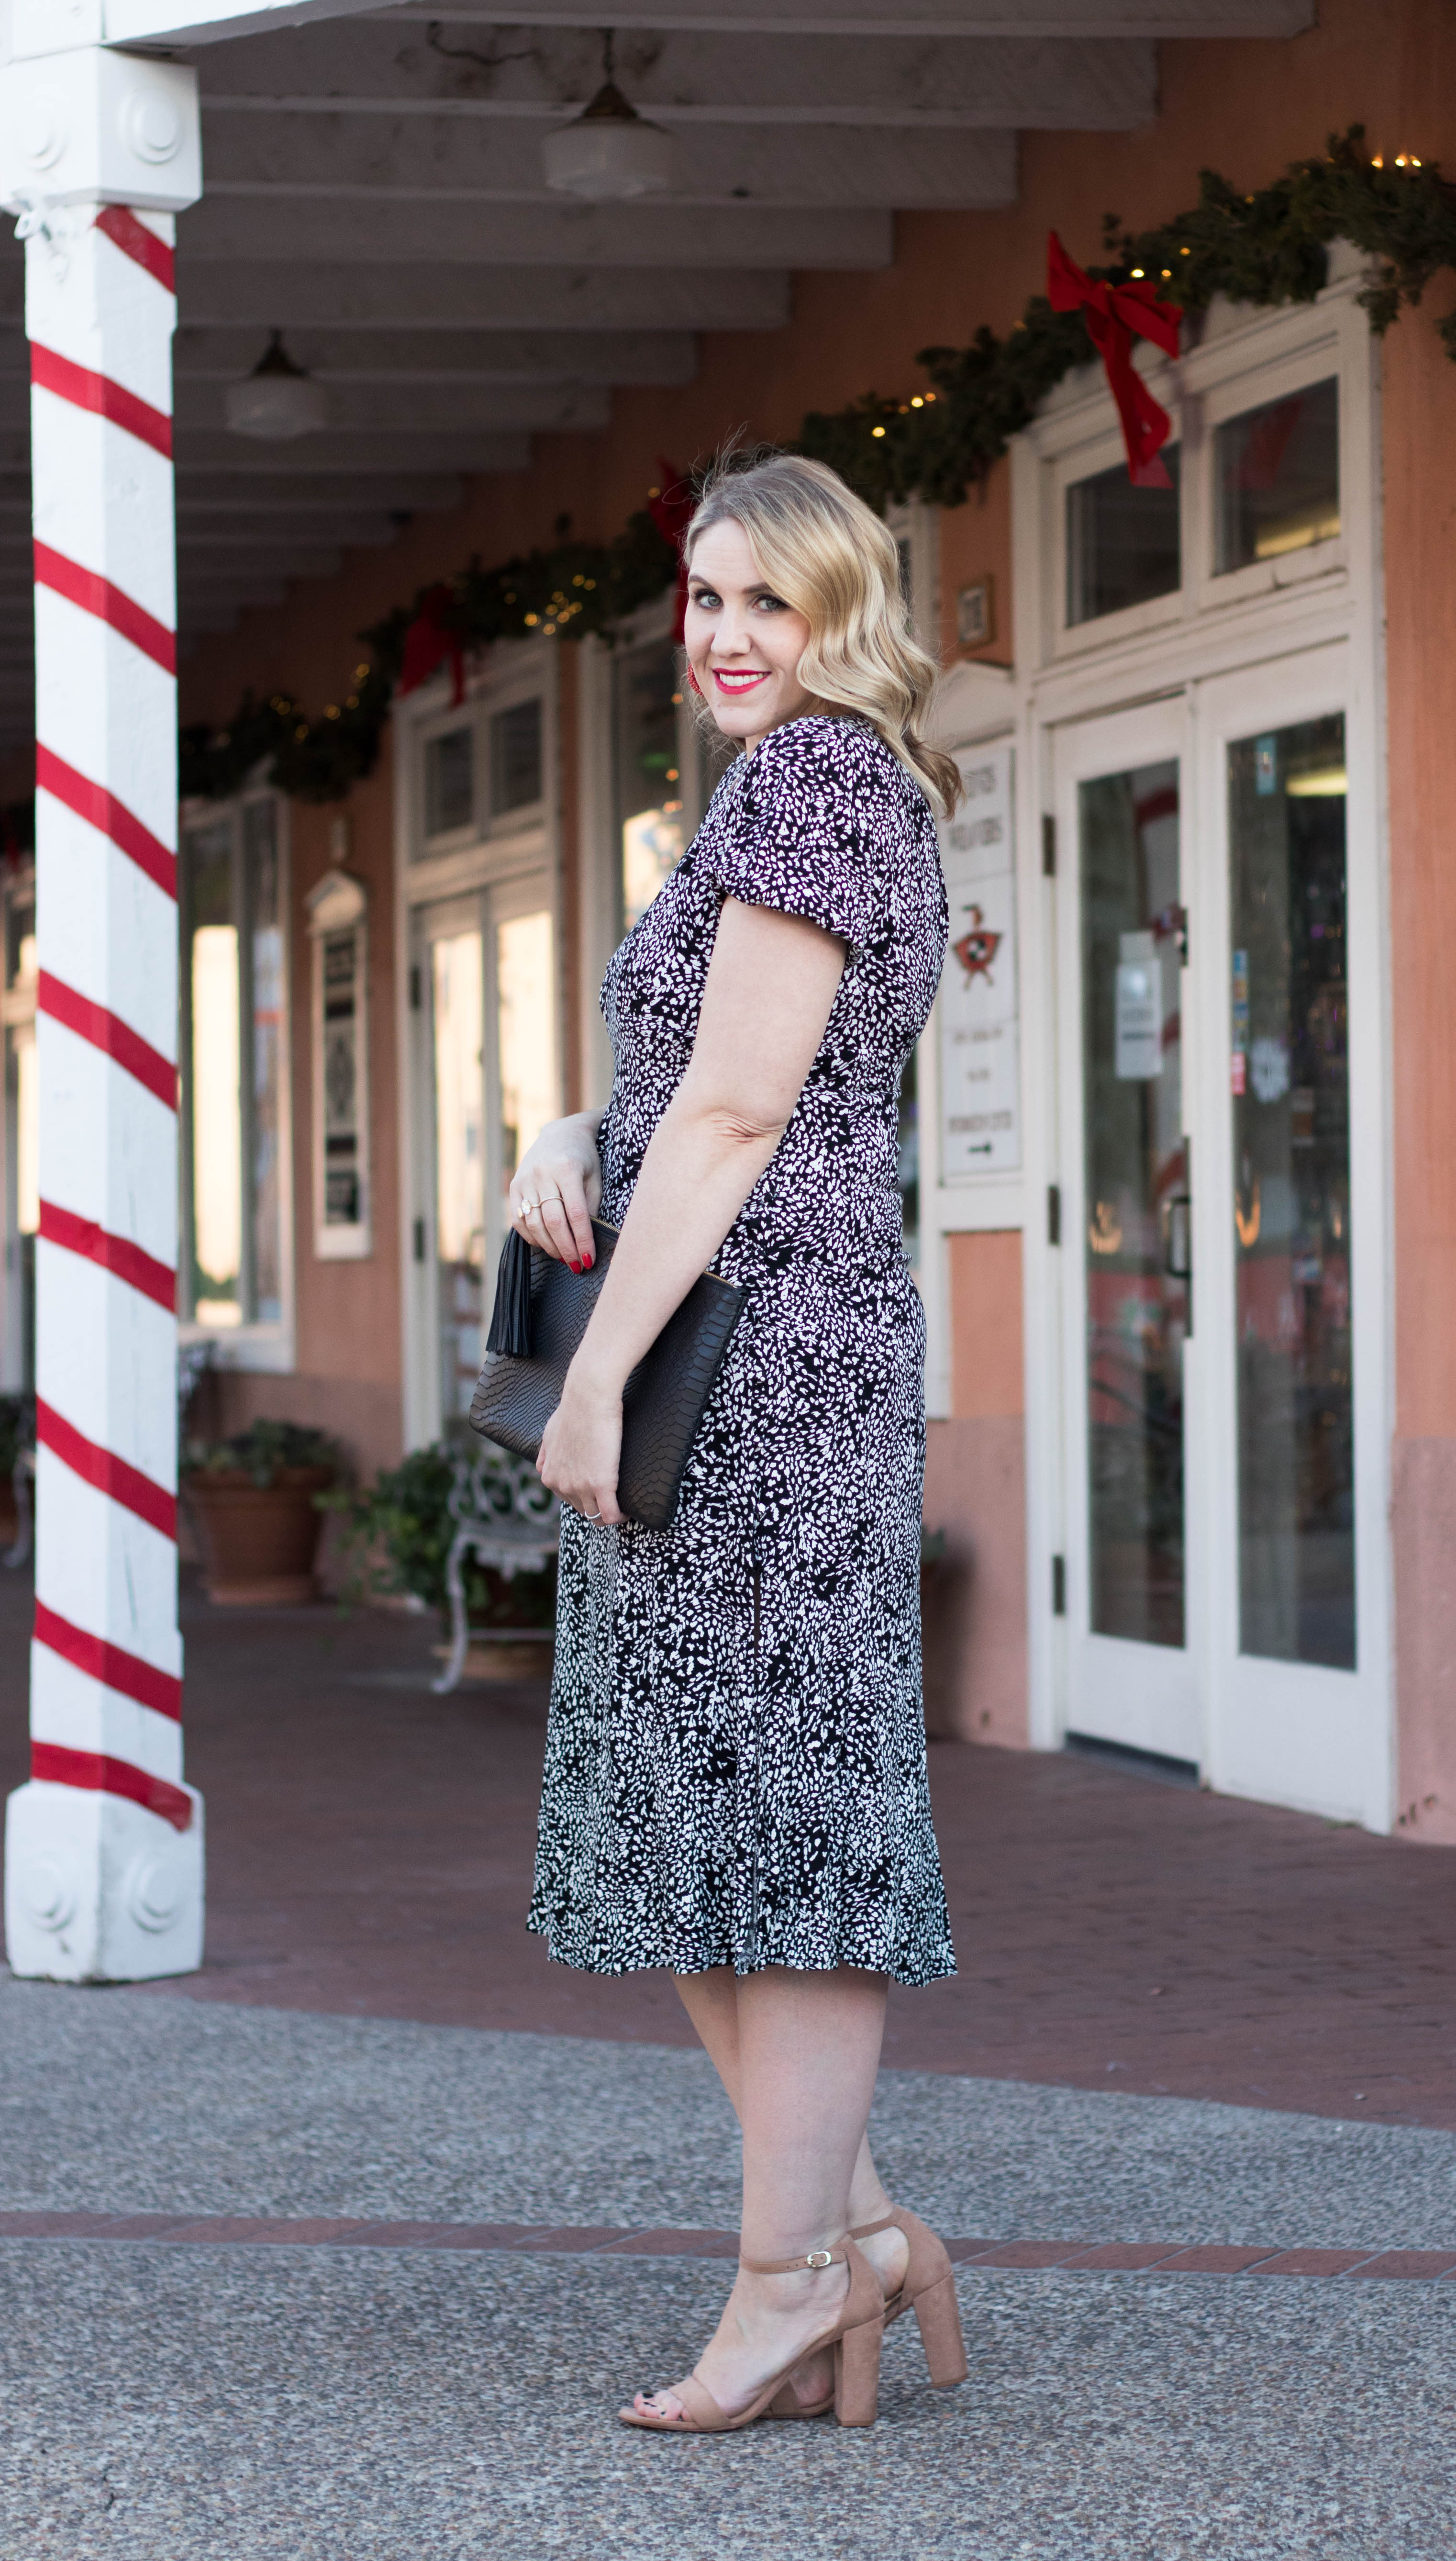 free people dress holiday style #freepeople #giginewyork #targetstyle